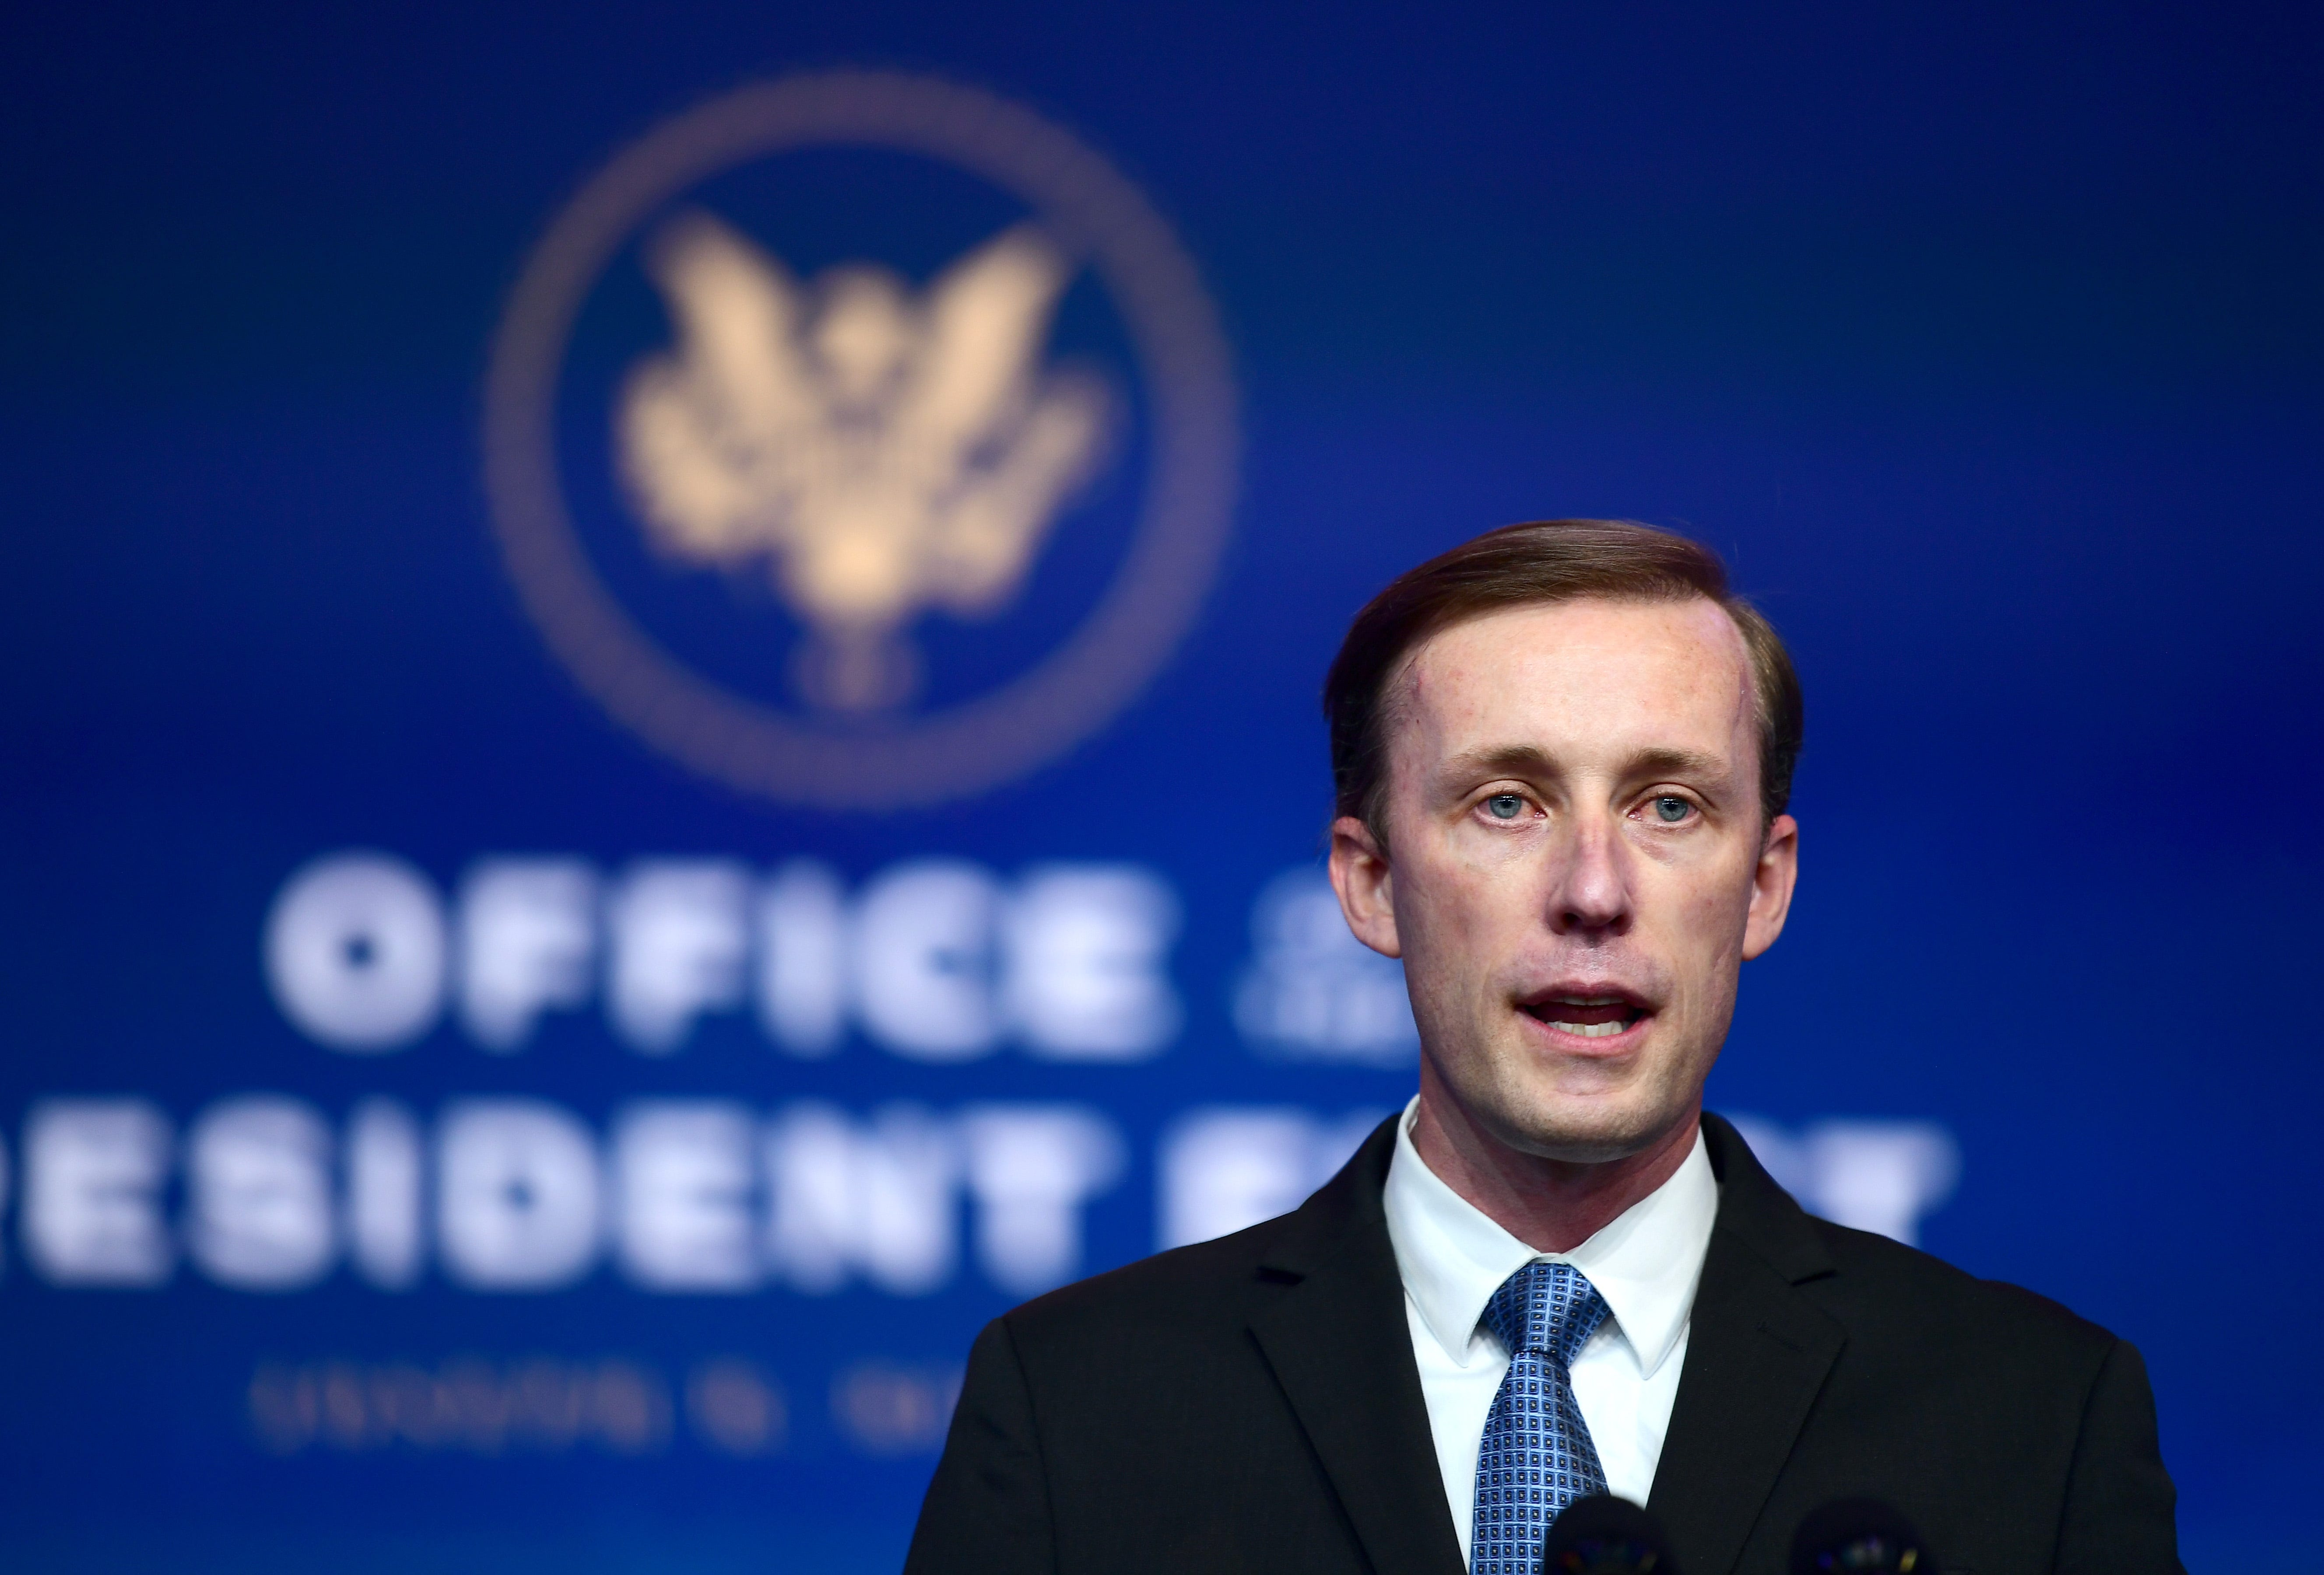 National Security Advisor nominee Jake Sullivan speaks after being introduced by President-elect Joe Biden as he introduces key foreign policy and national security nominees and appointments at the Queen Theatre on November 24, 2020 in Wilmington, Delaware.